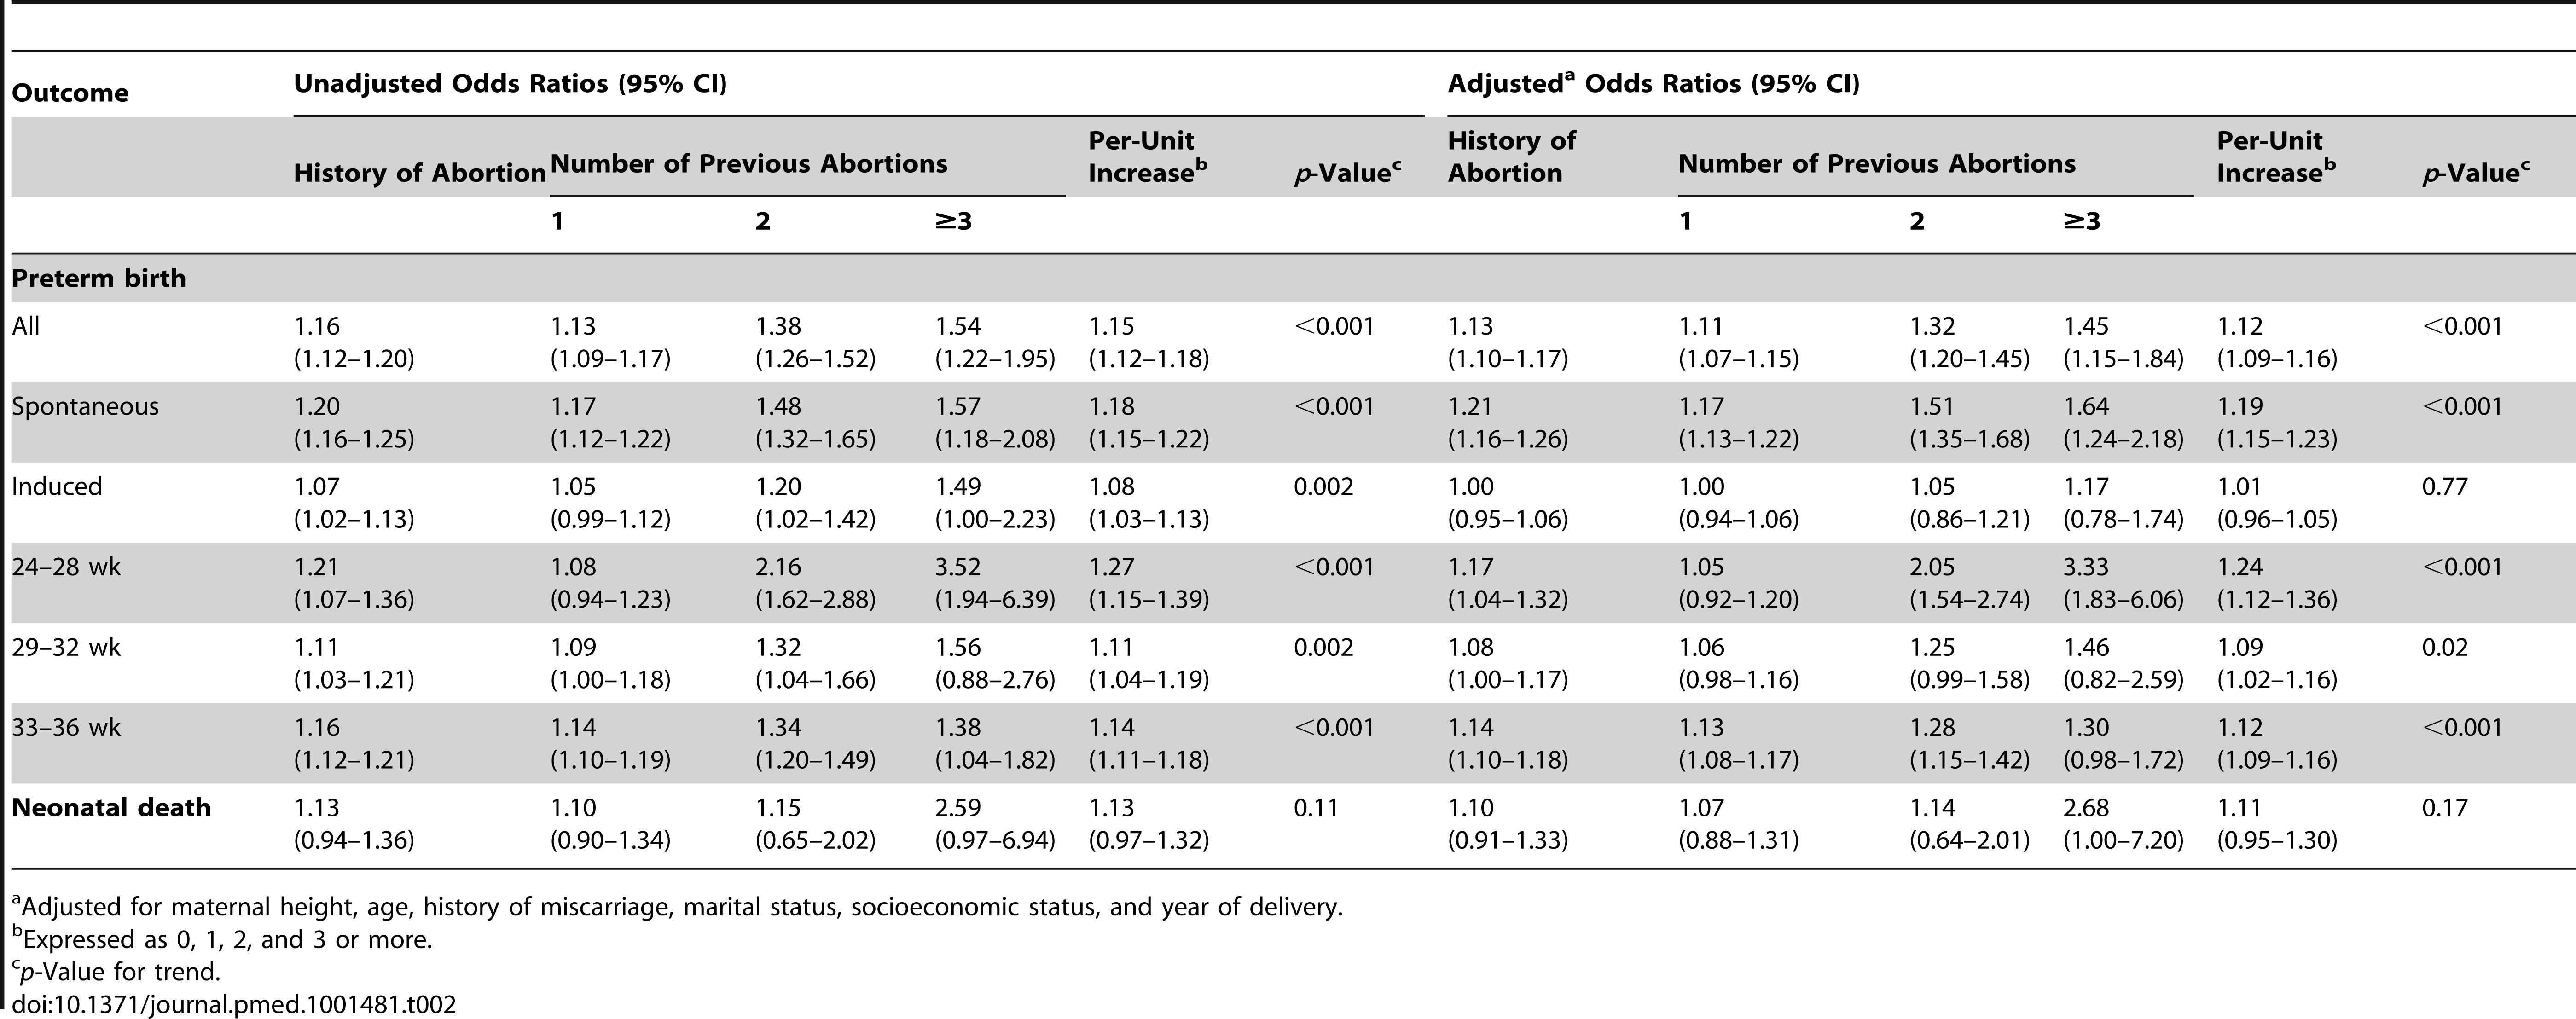 Logistic regression analysis of the association between previous abortion and the risk of preterm birth and neonatal death.